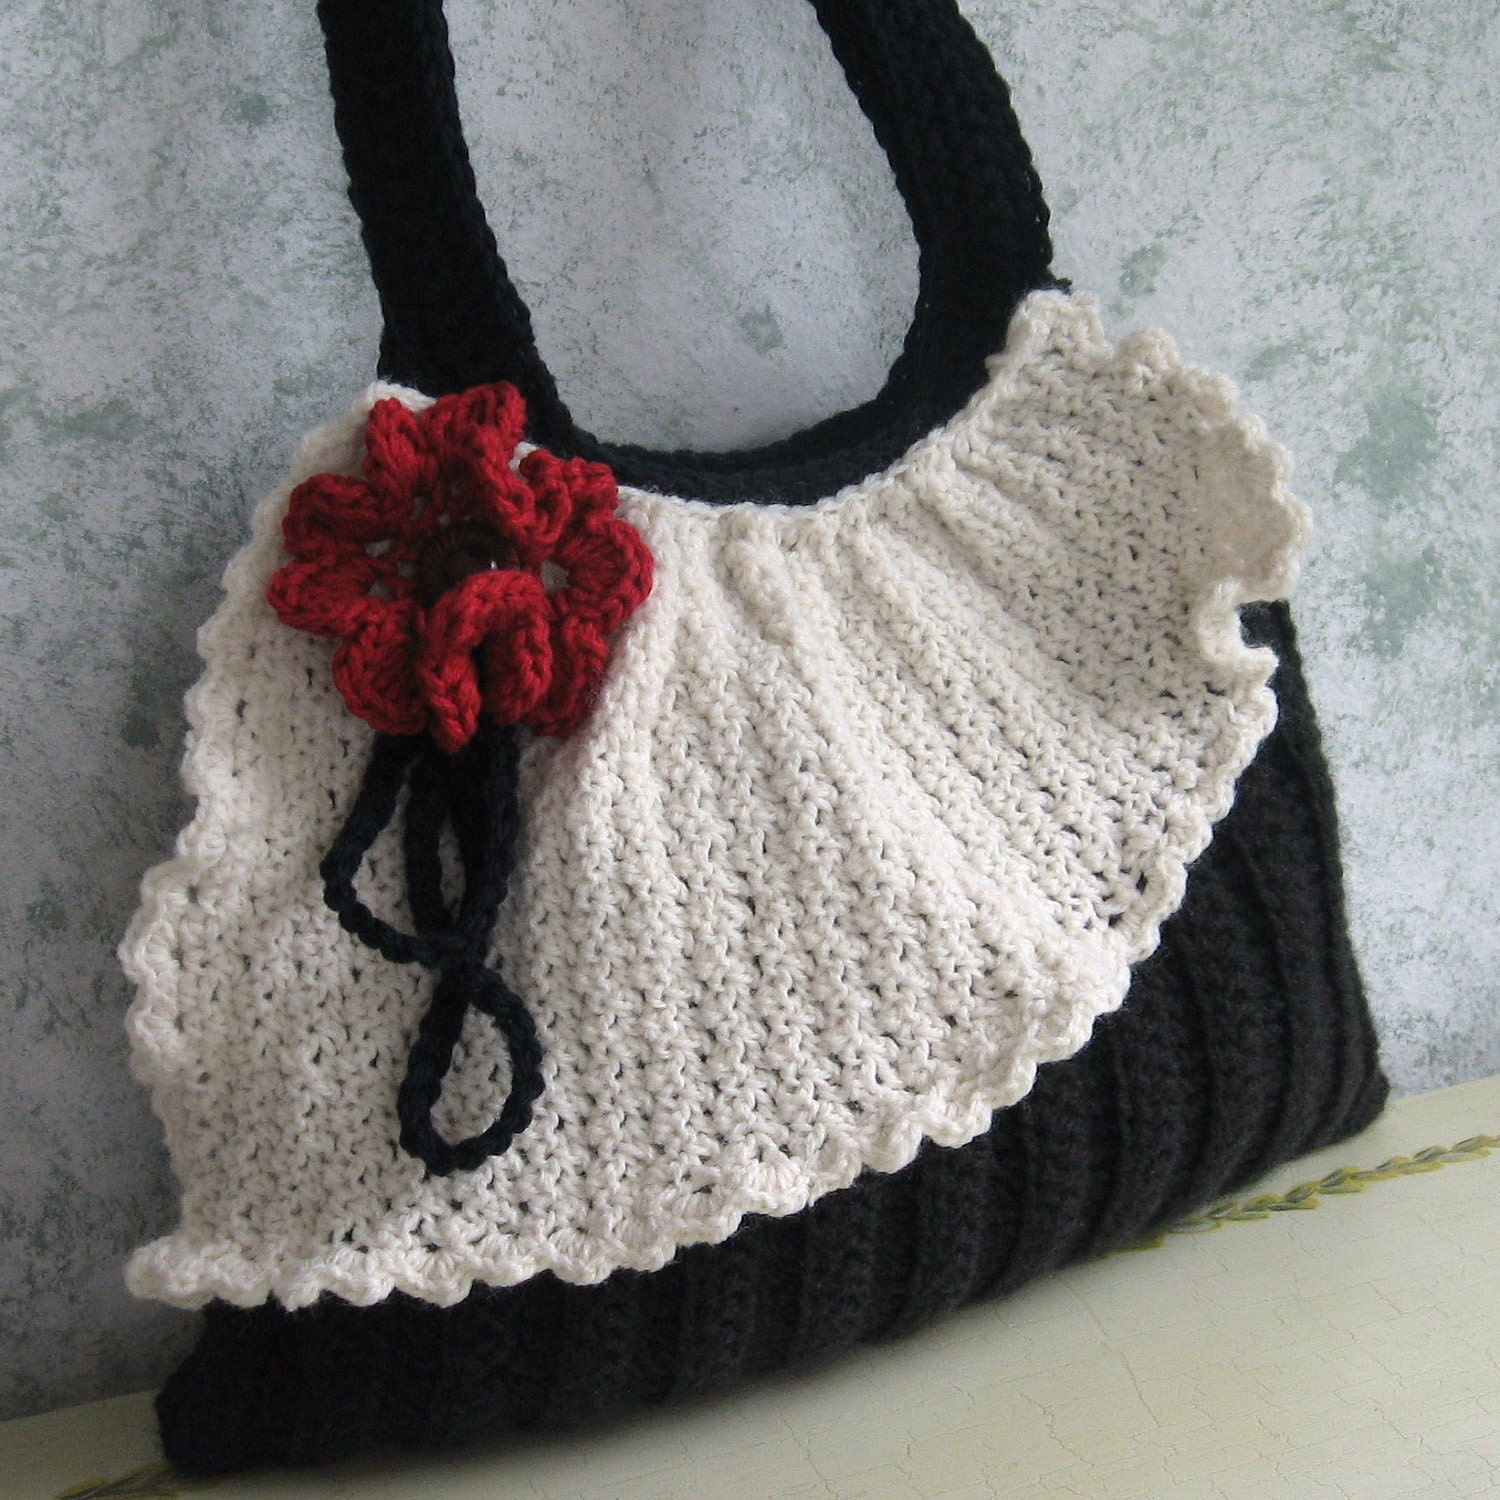 How To Make Crochet Purse : Crochet Purse Pattern Pleated Bag With Drape And by kalliedesigns